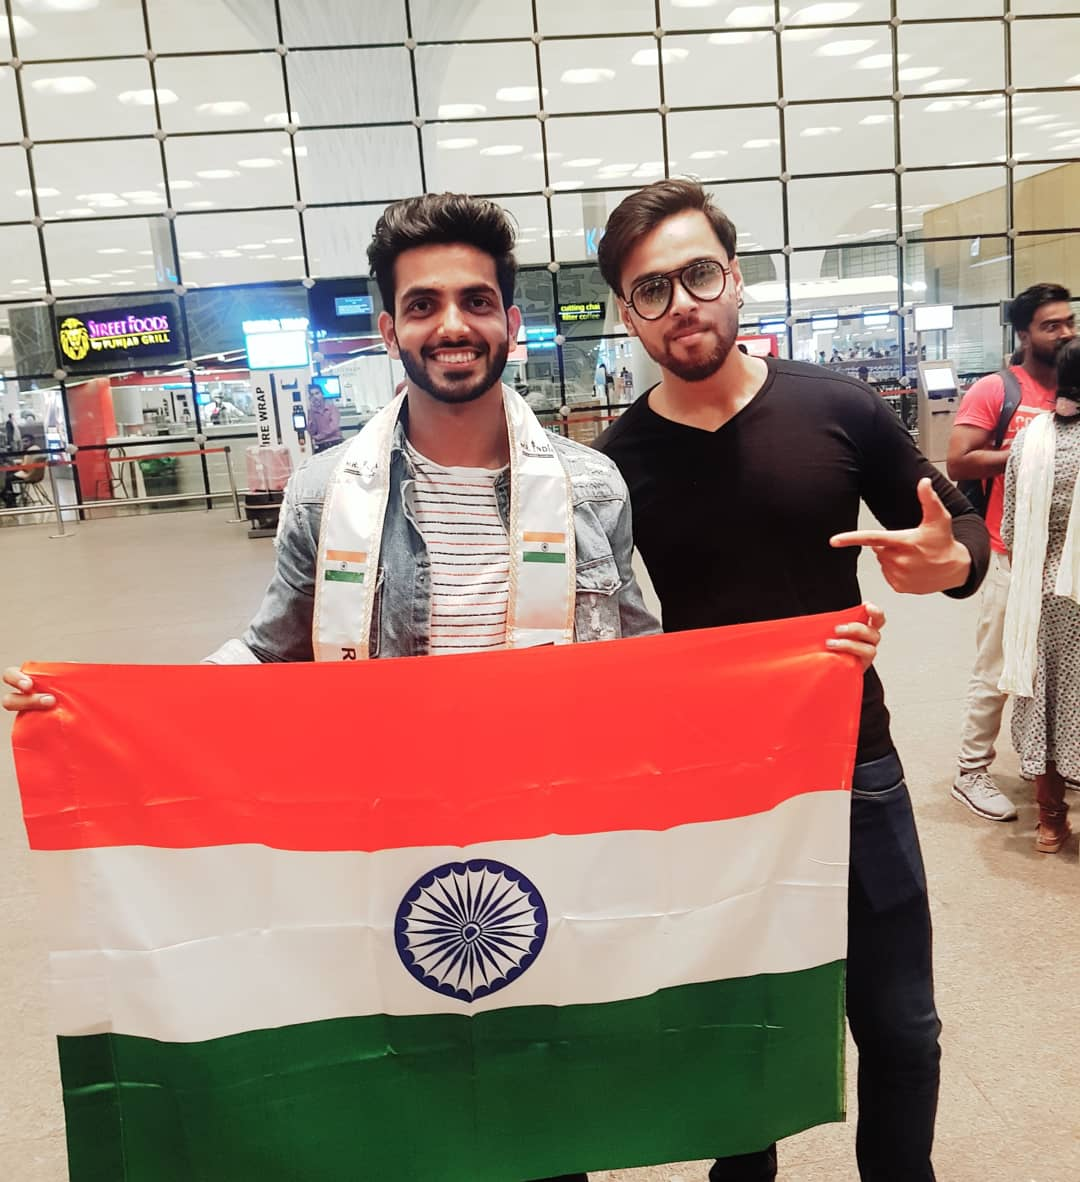 Rubaru Mr India National Universe 2019, Sahil Arora with Rubaru Mr India 2018, Syed Zain at the airport in Mumbai.